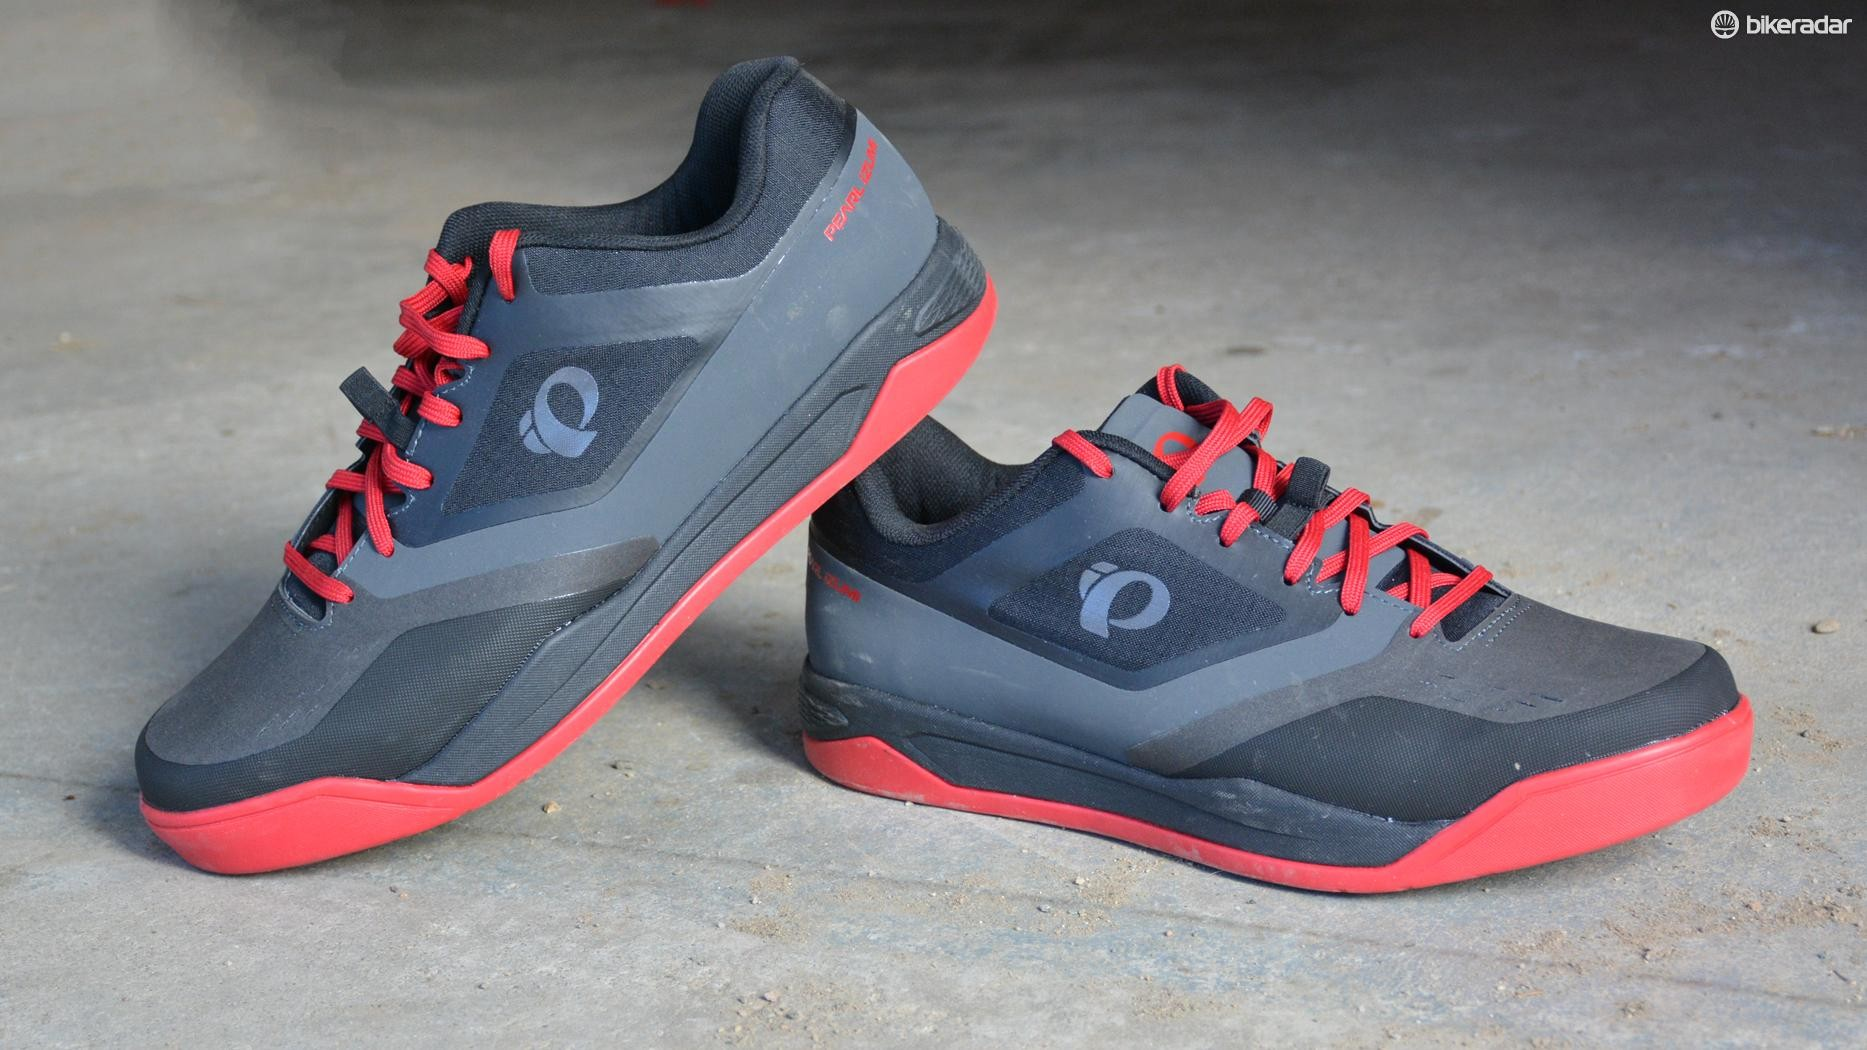 Pearl Izumi's X-Alp Launch SPD shoes are casual, clip-in bike shoes